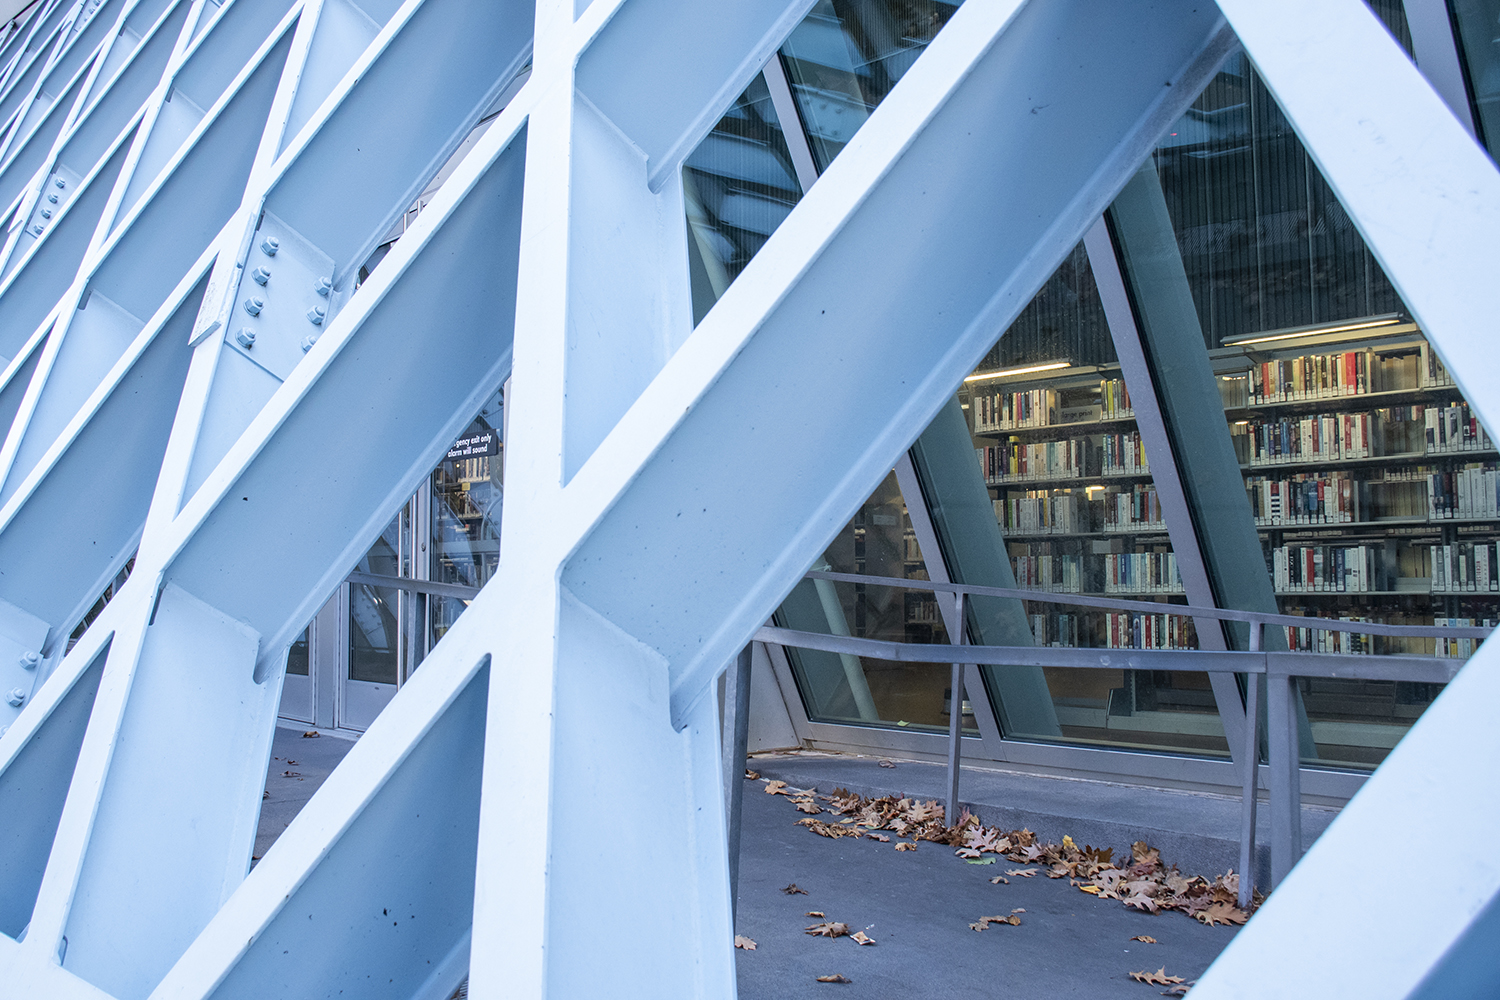 Seattle Central Library's Post Modern architecture attracts many locals and tourists alike. And the bright and colorful interior is equally stunning — offering 1.5 million books and materials spread over 362,000 square feet. (Image: Rachael Jones / Seattle Refined)